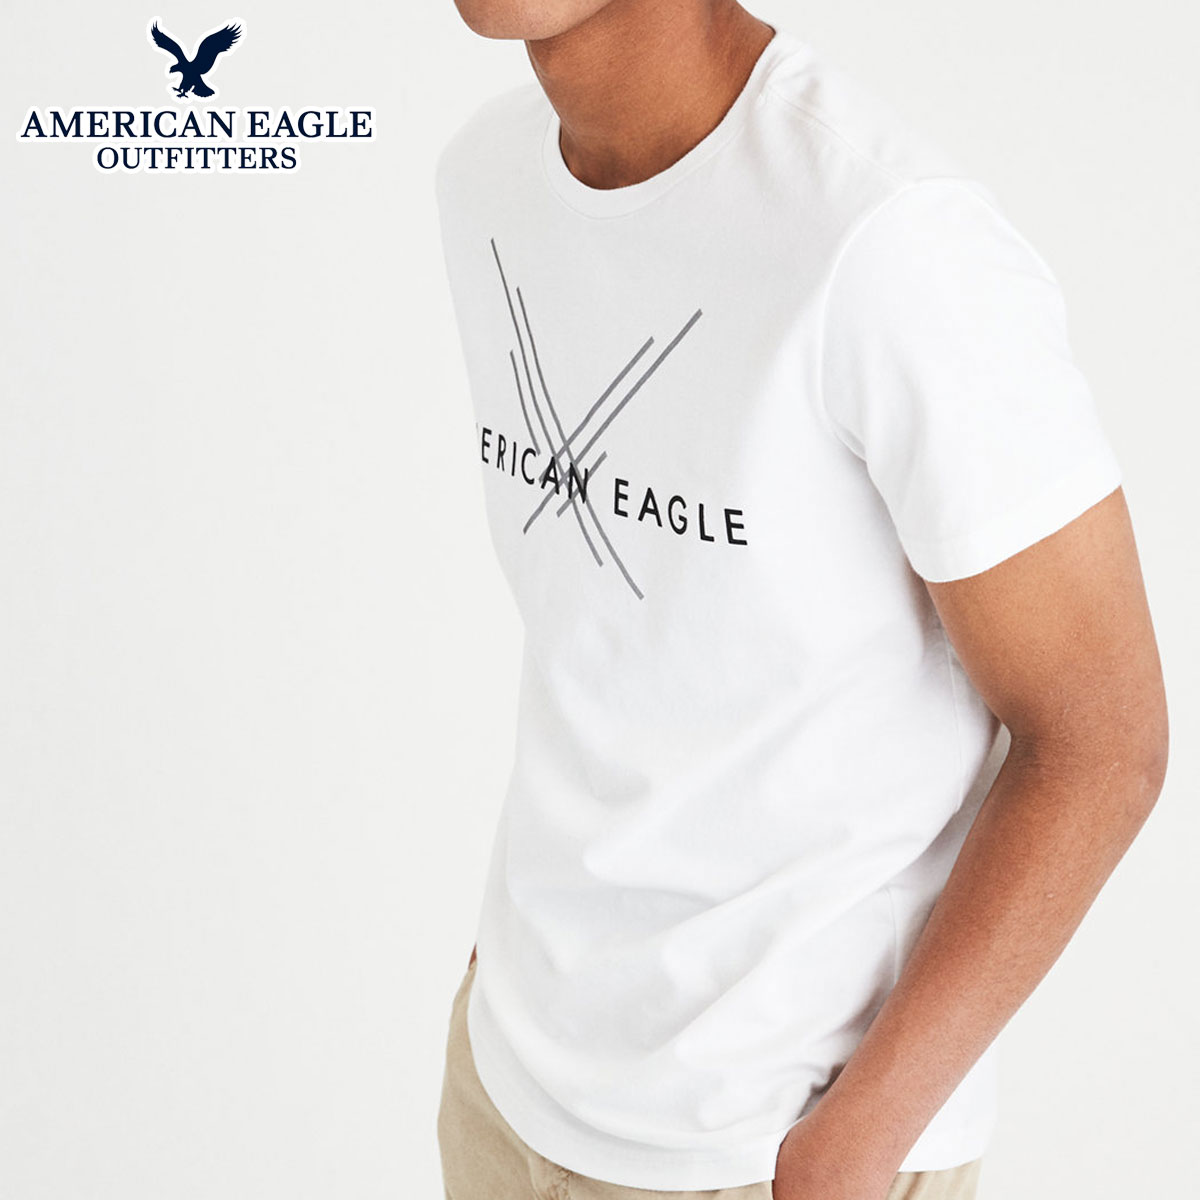 495a68142 American eagle AMERICAN EAGLE regular article men crew neck short sleeves T-shirt  AE ACTIVE ...